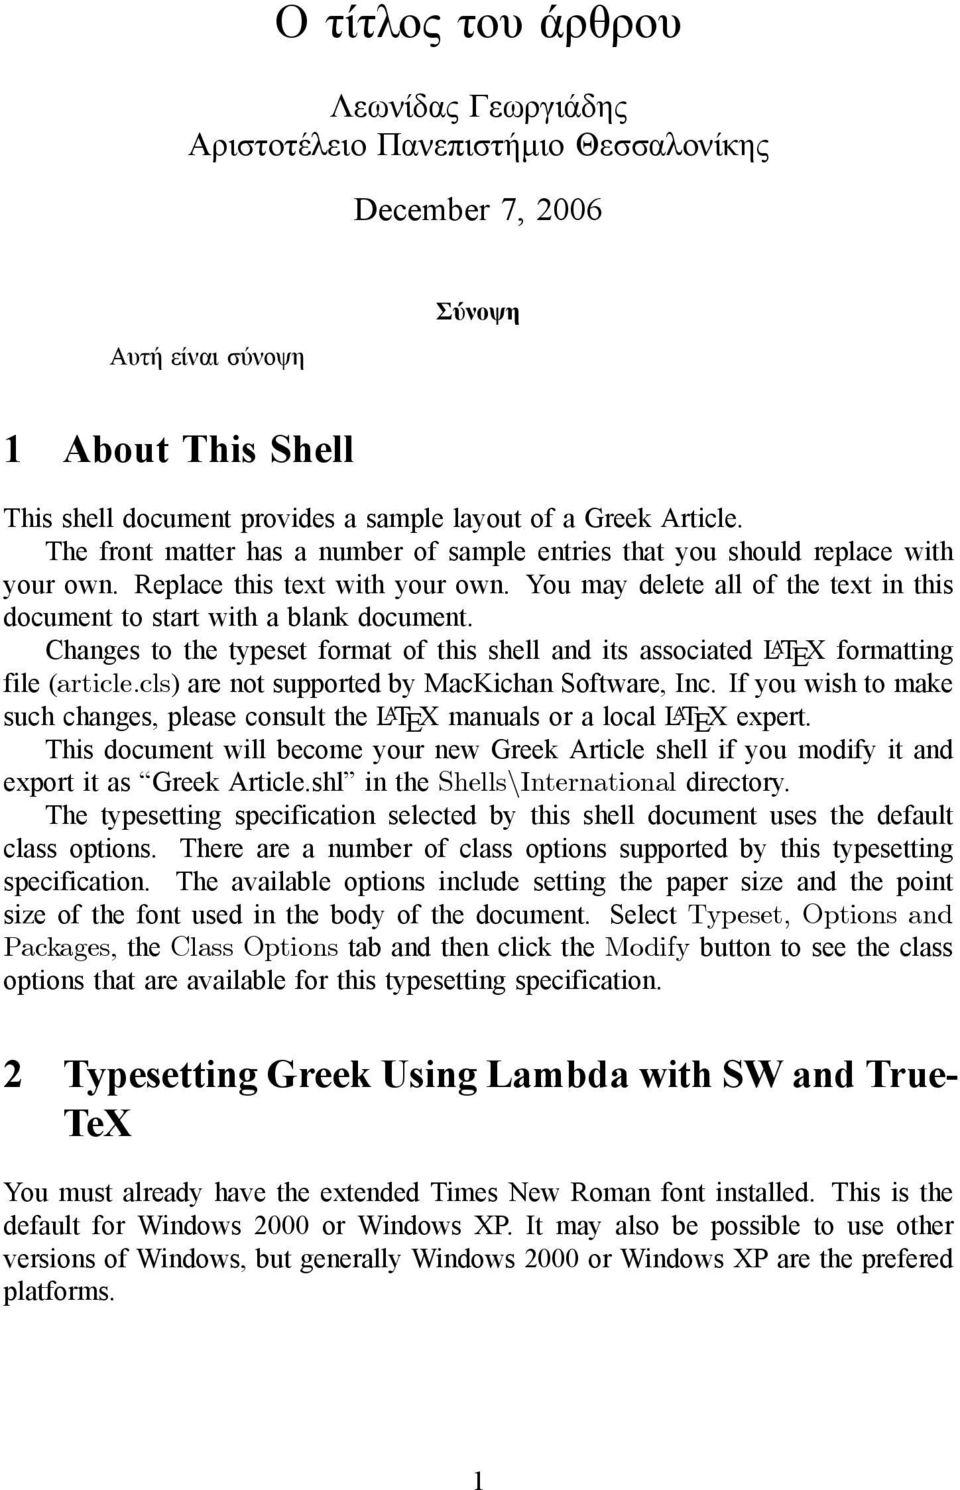 You may delete all of the text in this document to start with a blank document. Changes to the typeset format of this shell and its associated L A TEX formatting file (article.